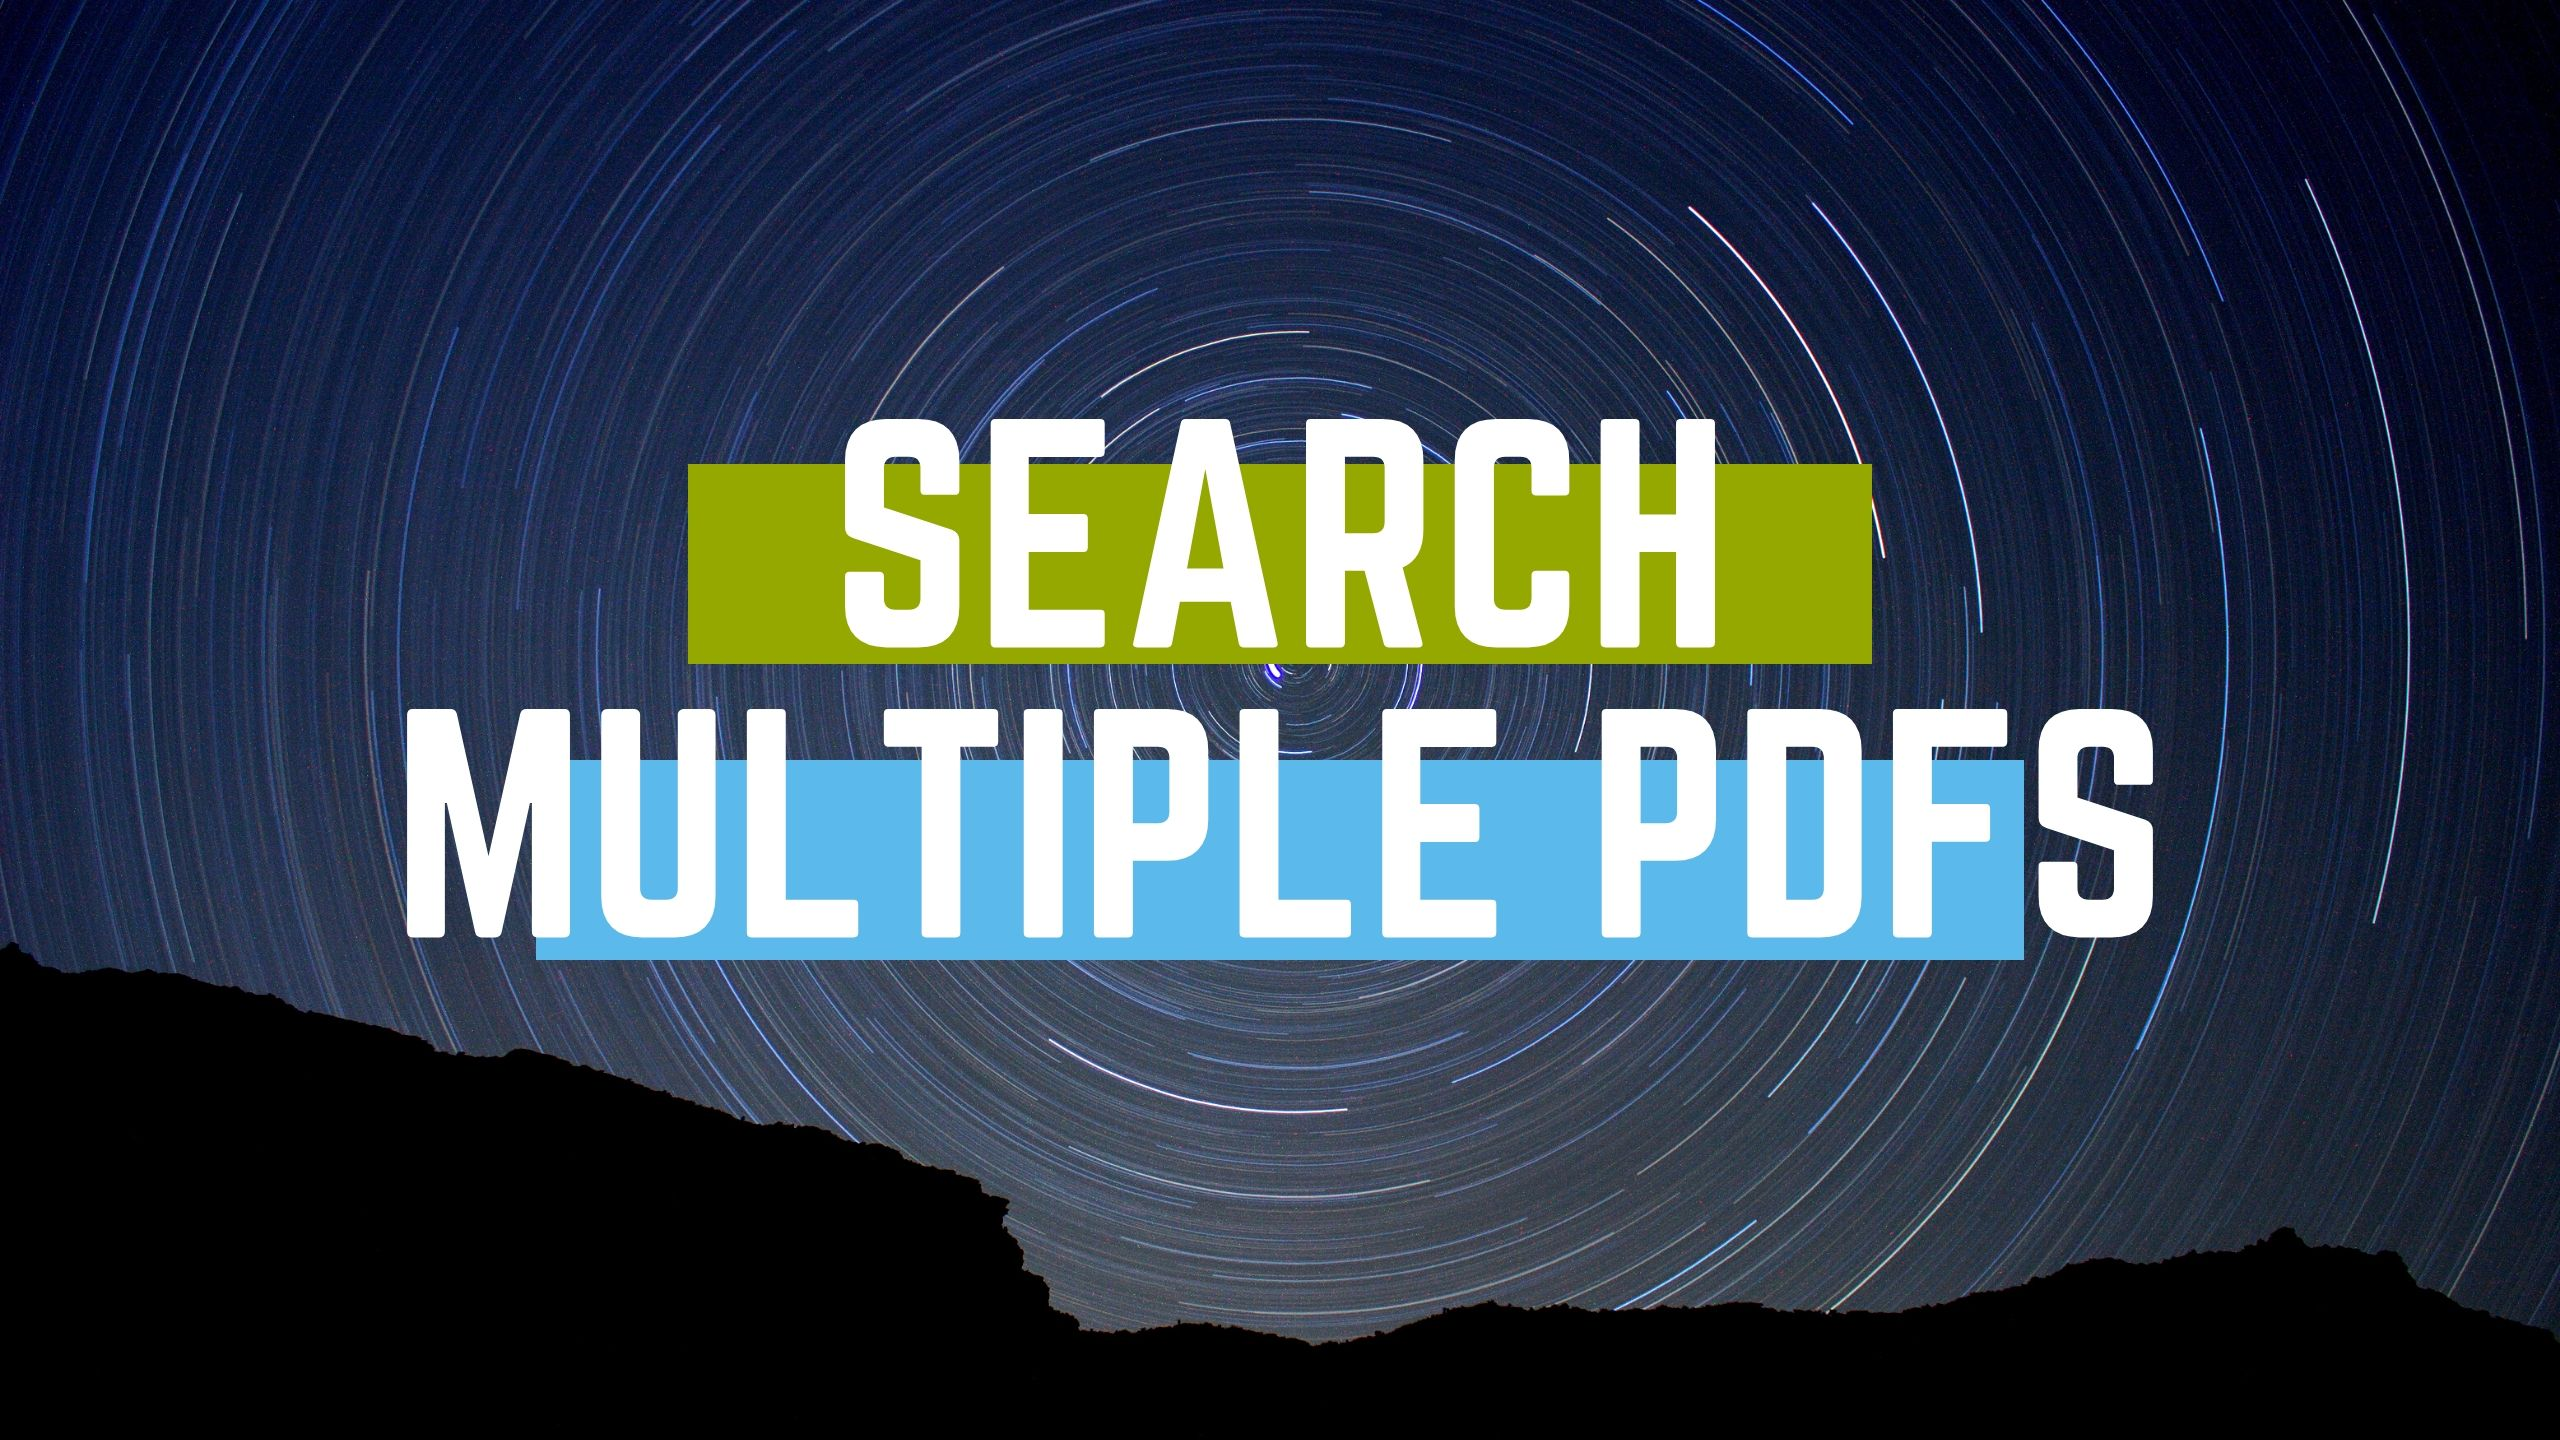 search multiple pdfs